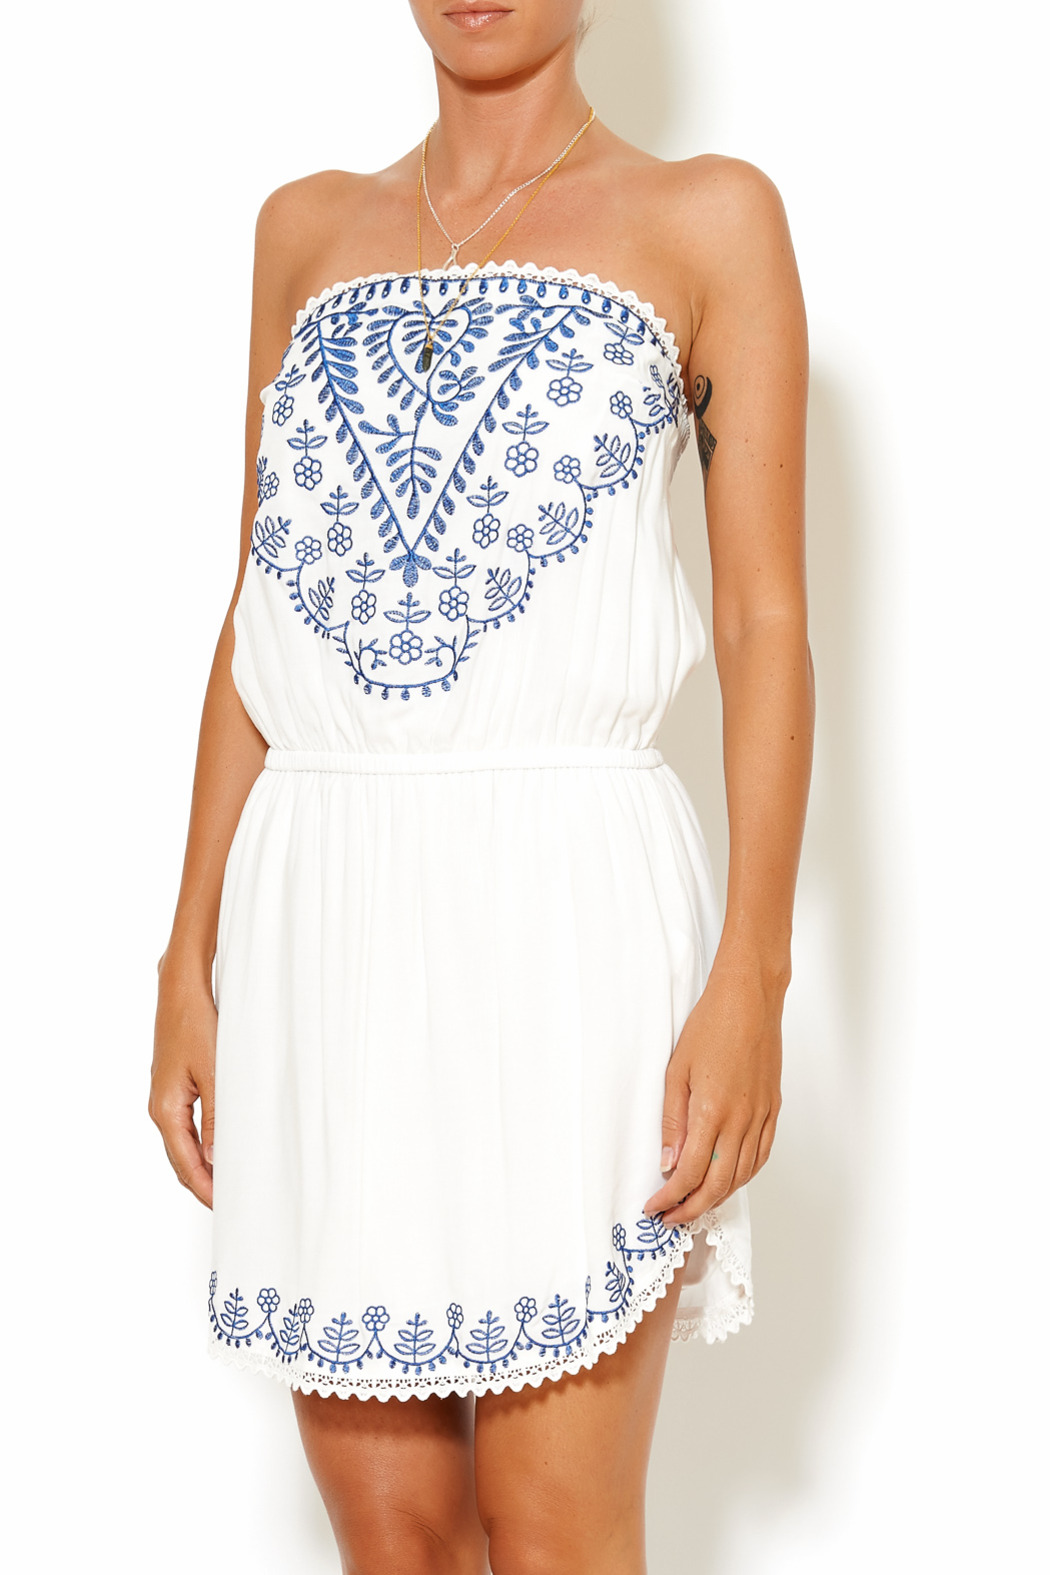 y&i clothing boutique Embroidered Tube Dress - Main Image